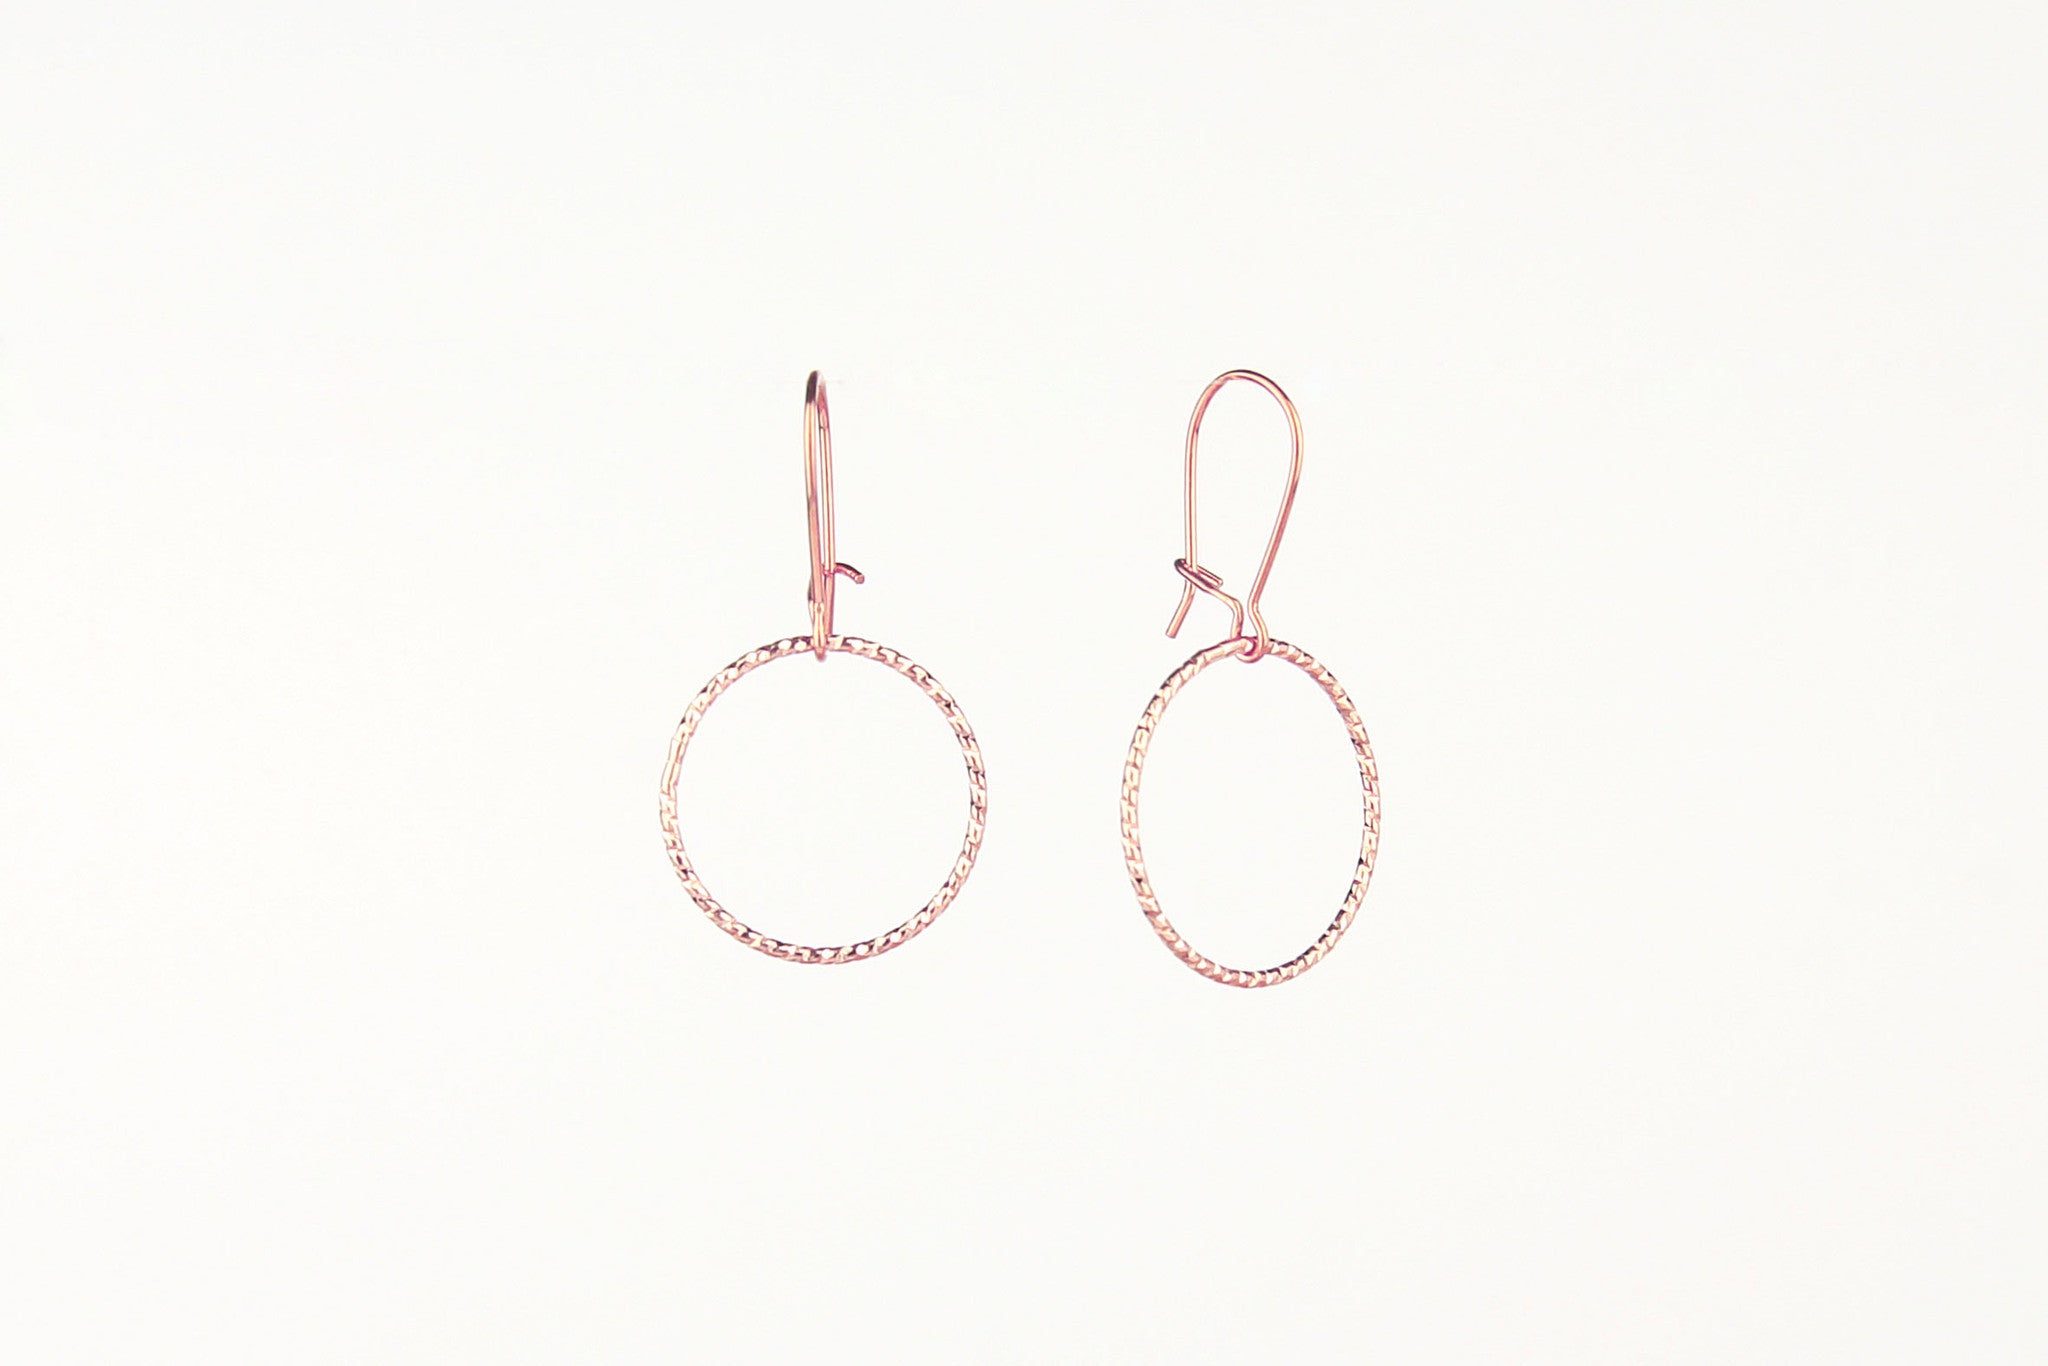 jewelberry ohrringe earrings shiny circle rose gold plated sterling silver fine jewelry handmade with love fairtrade